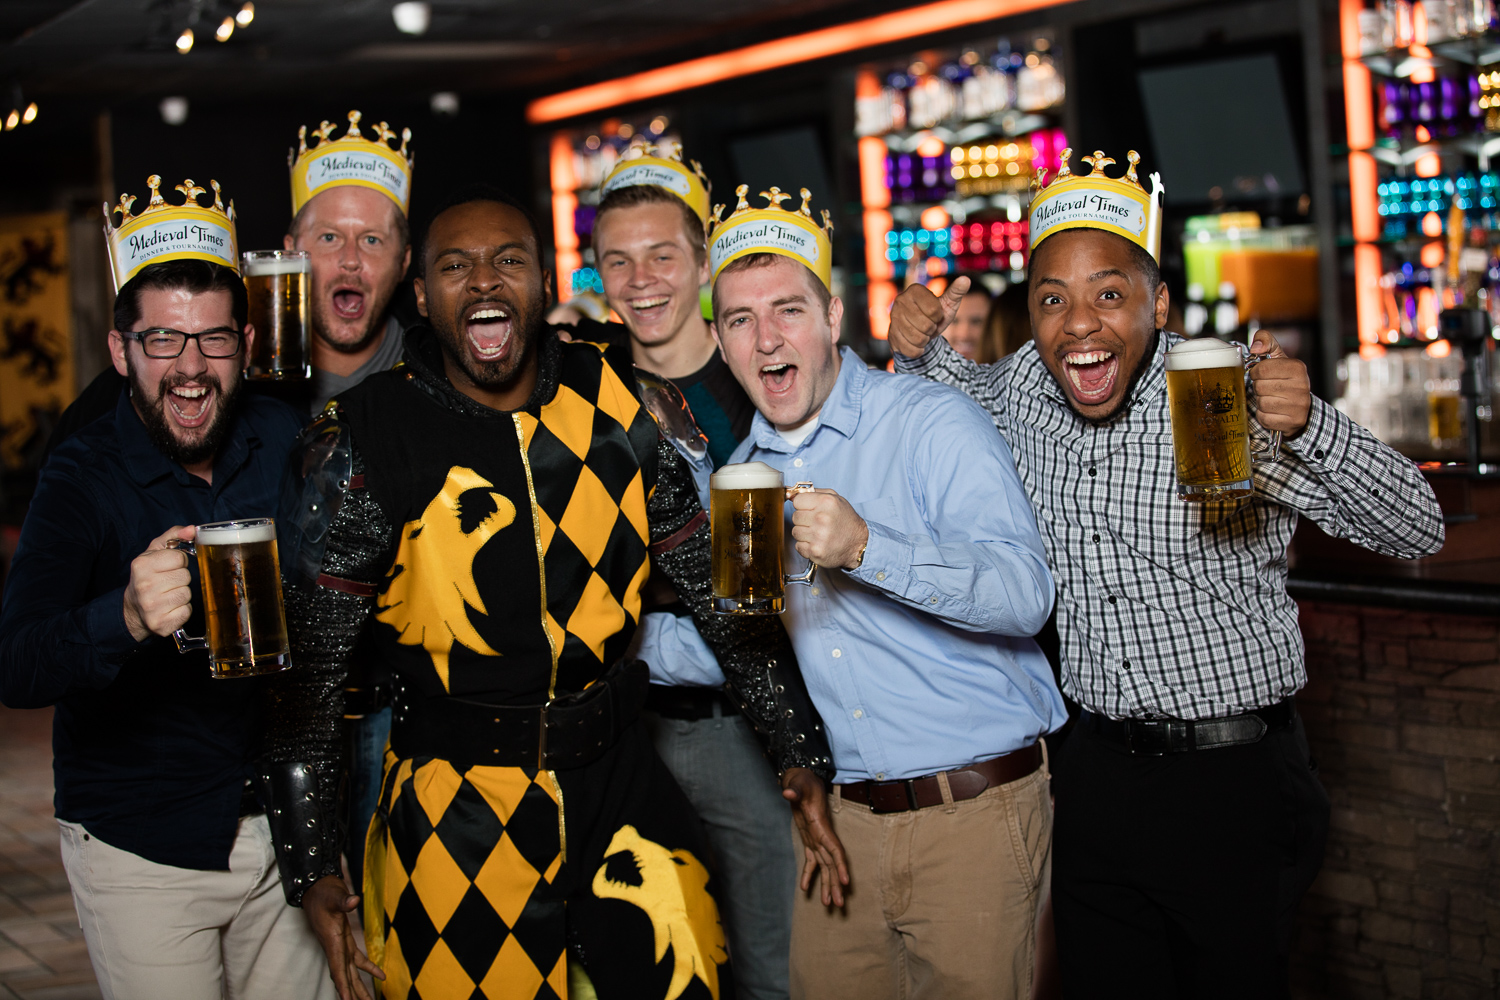 group of young men holding beverages by the bar posing with knight